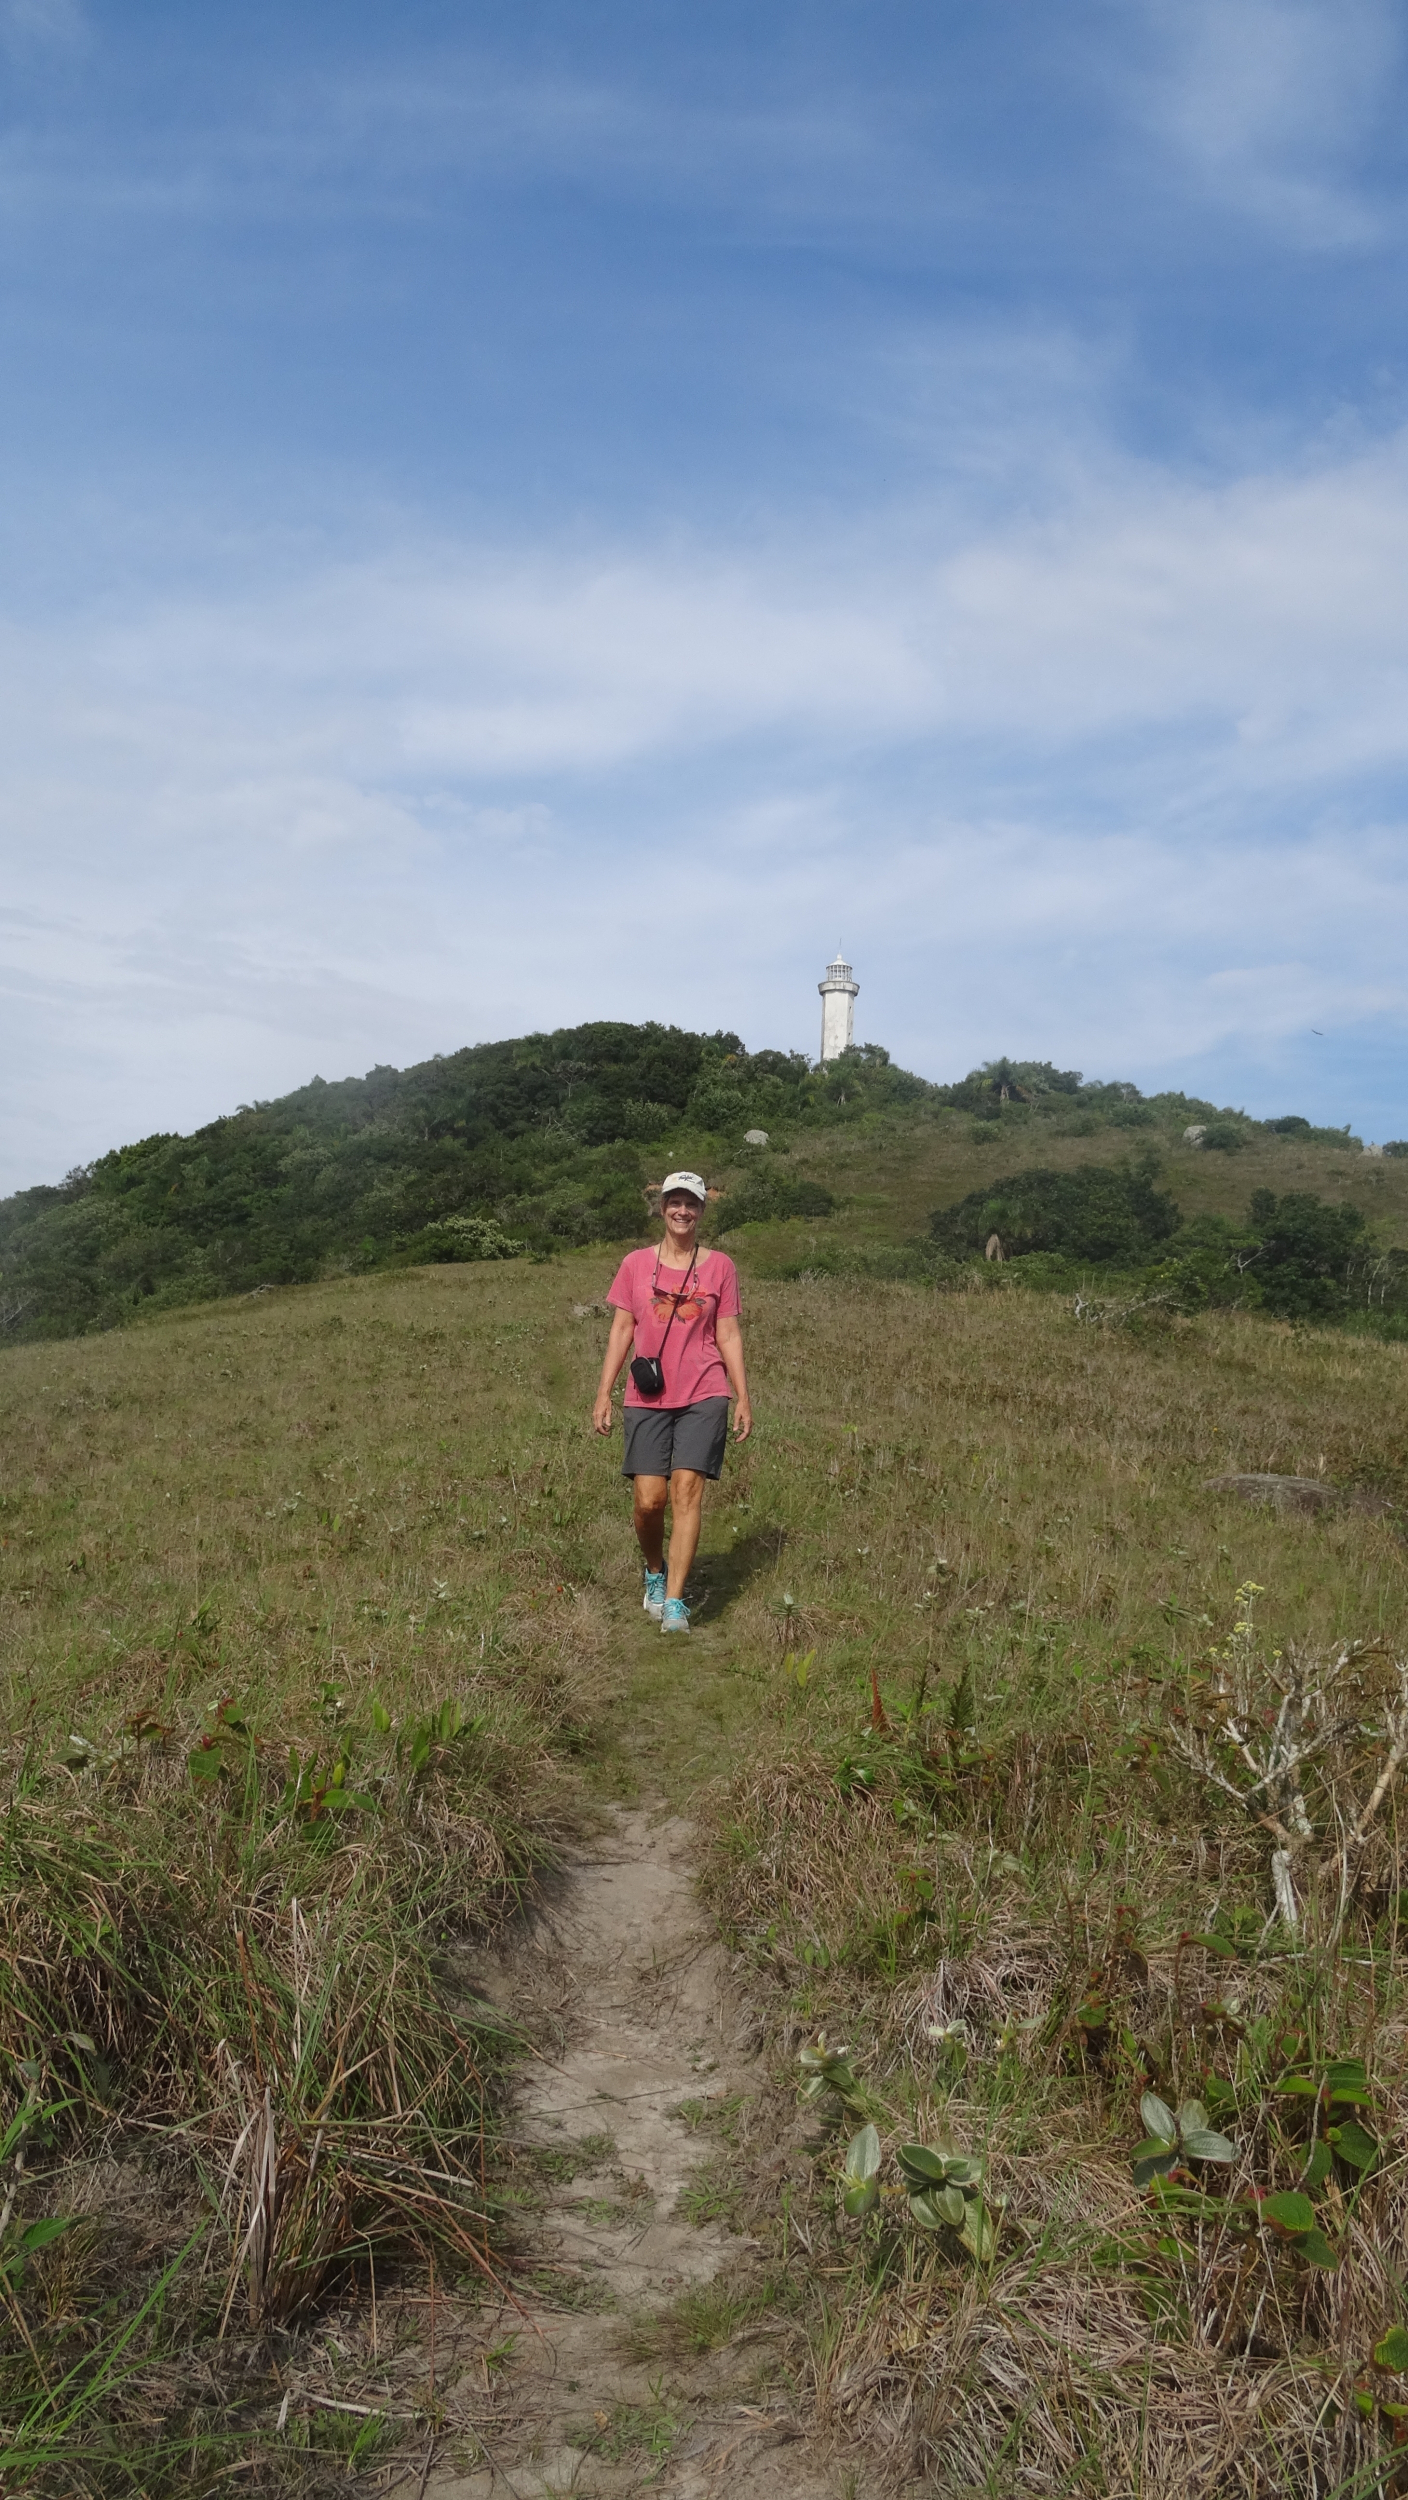 51. Hike to the lighthouse